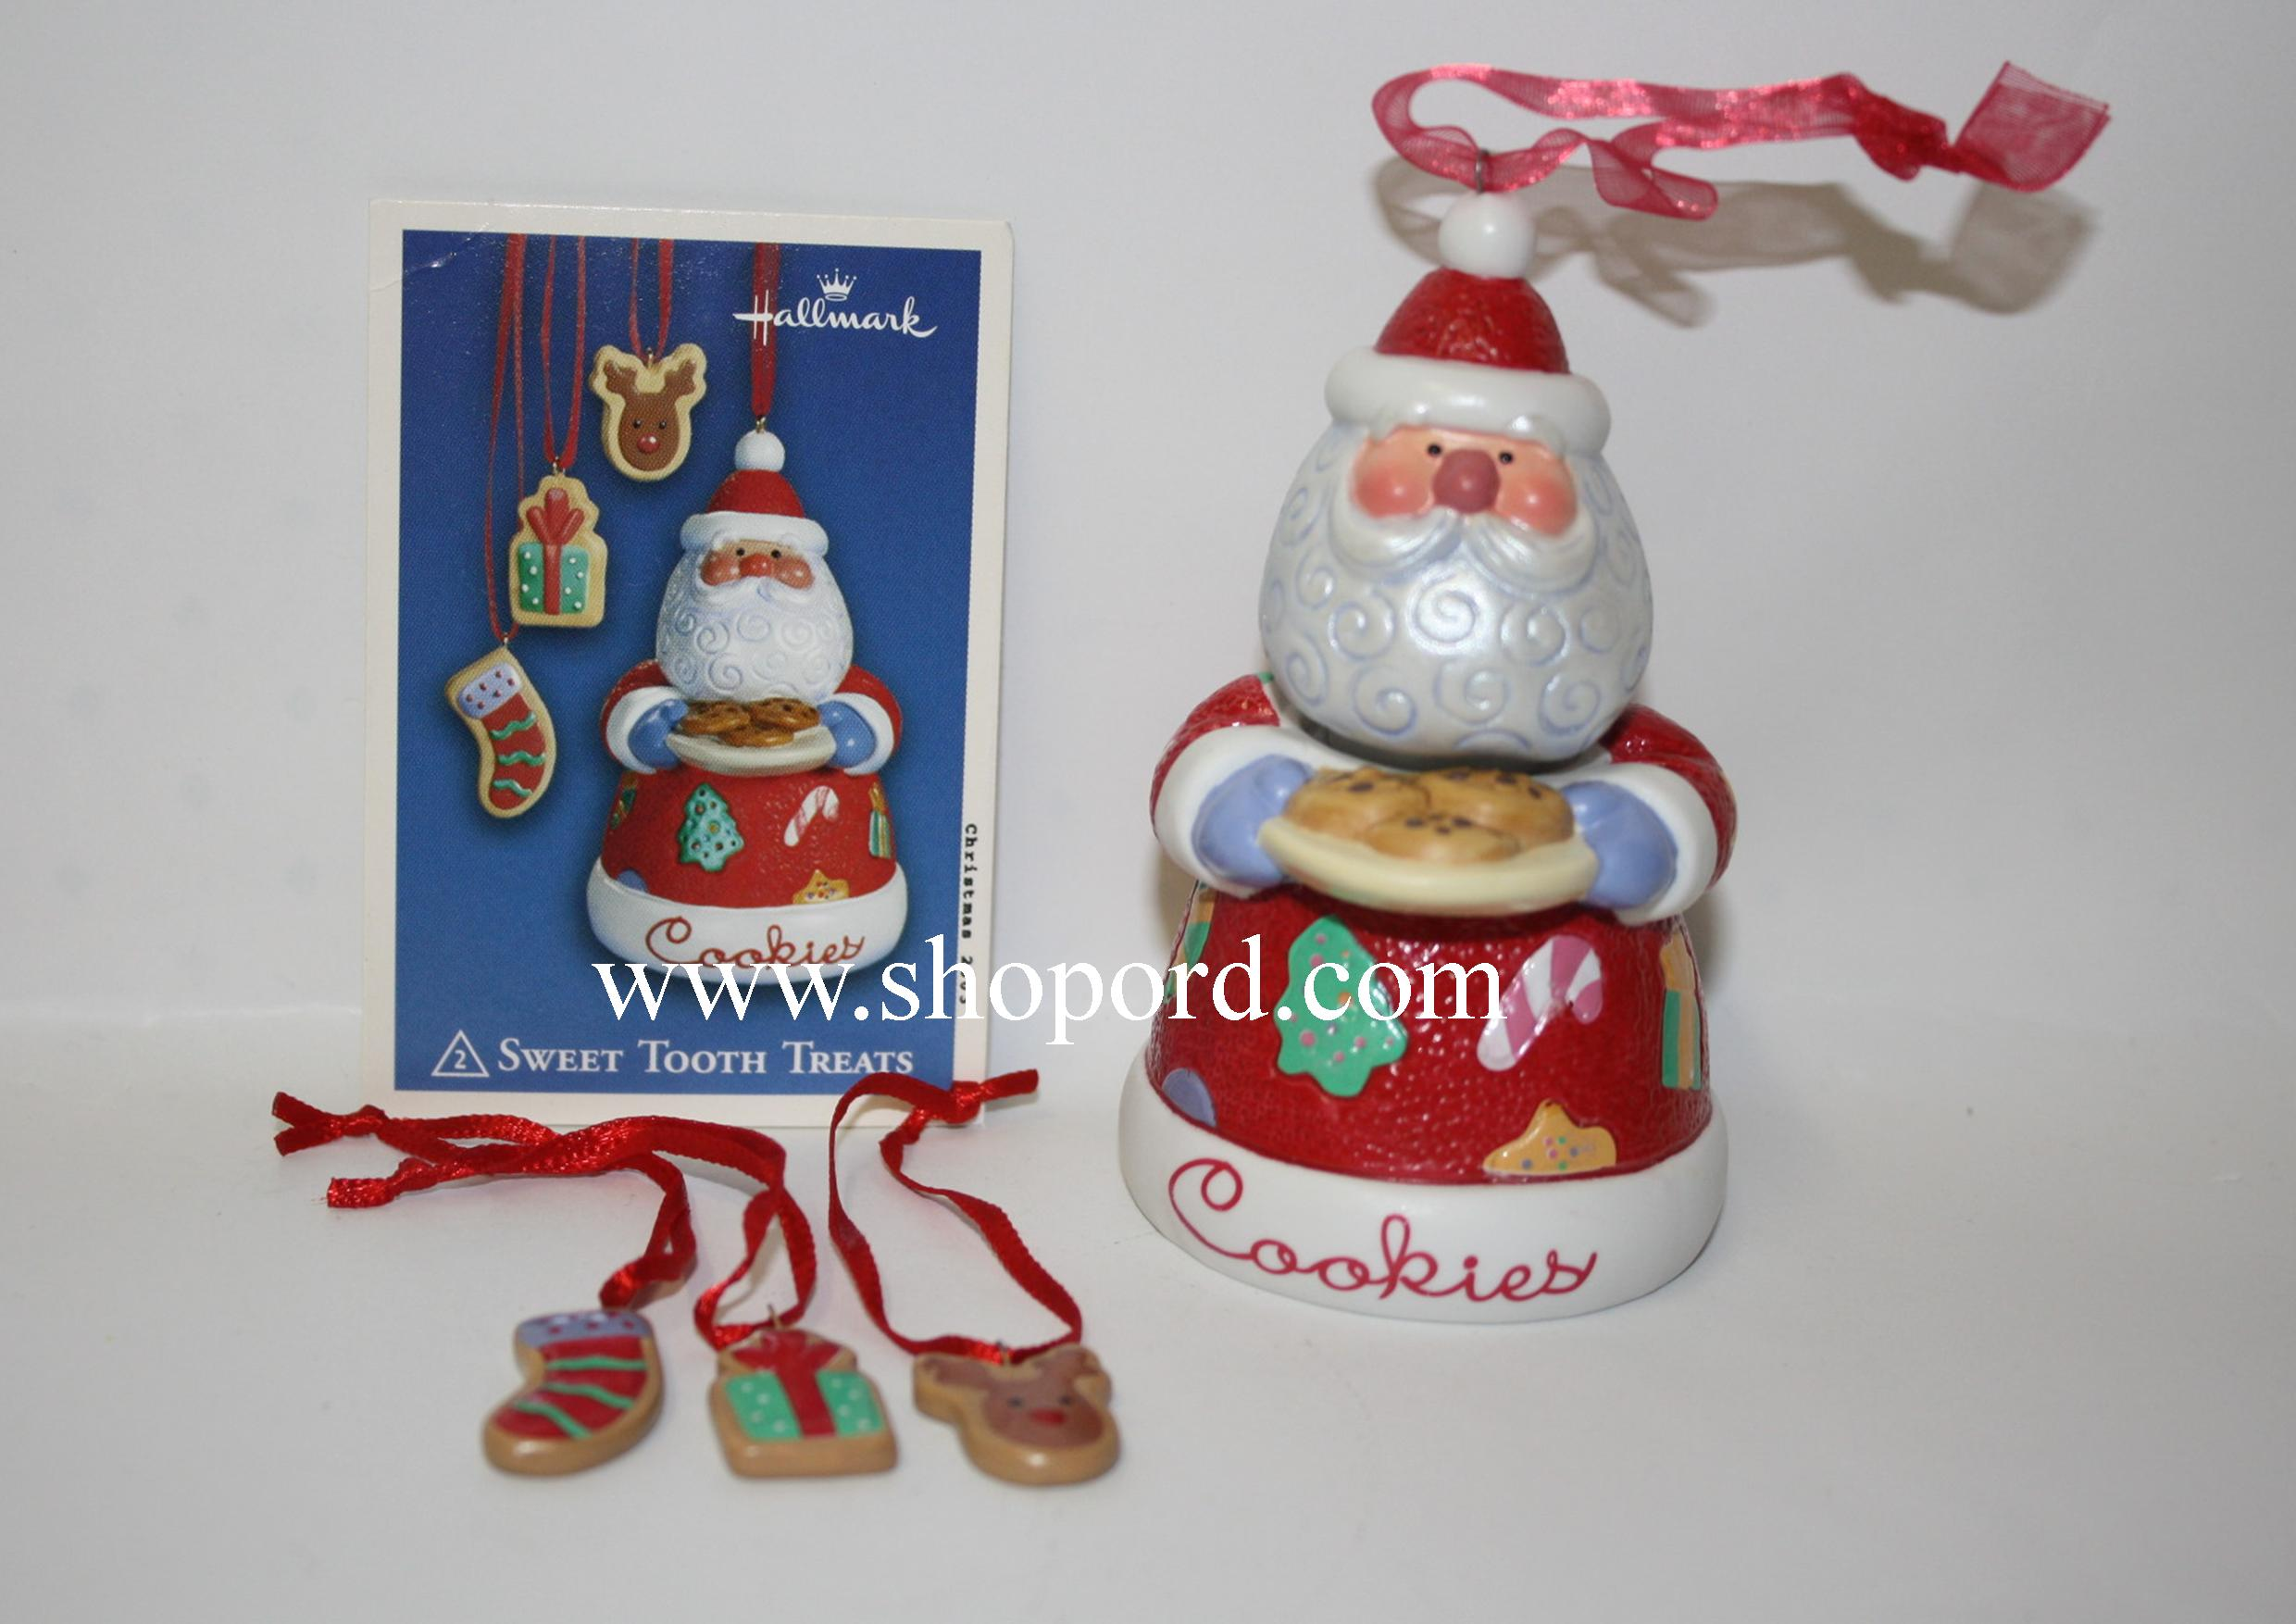 Hallmark 2003 Sweet Tooth Treats set of 4 Ornament 2nd in the series QX8199 Box Slightly Bent